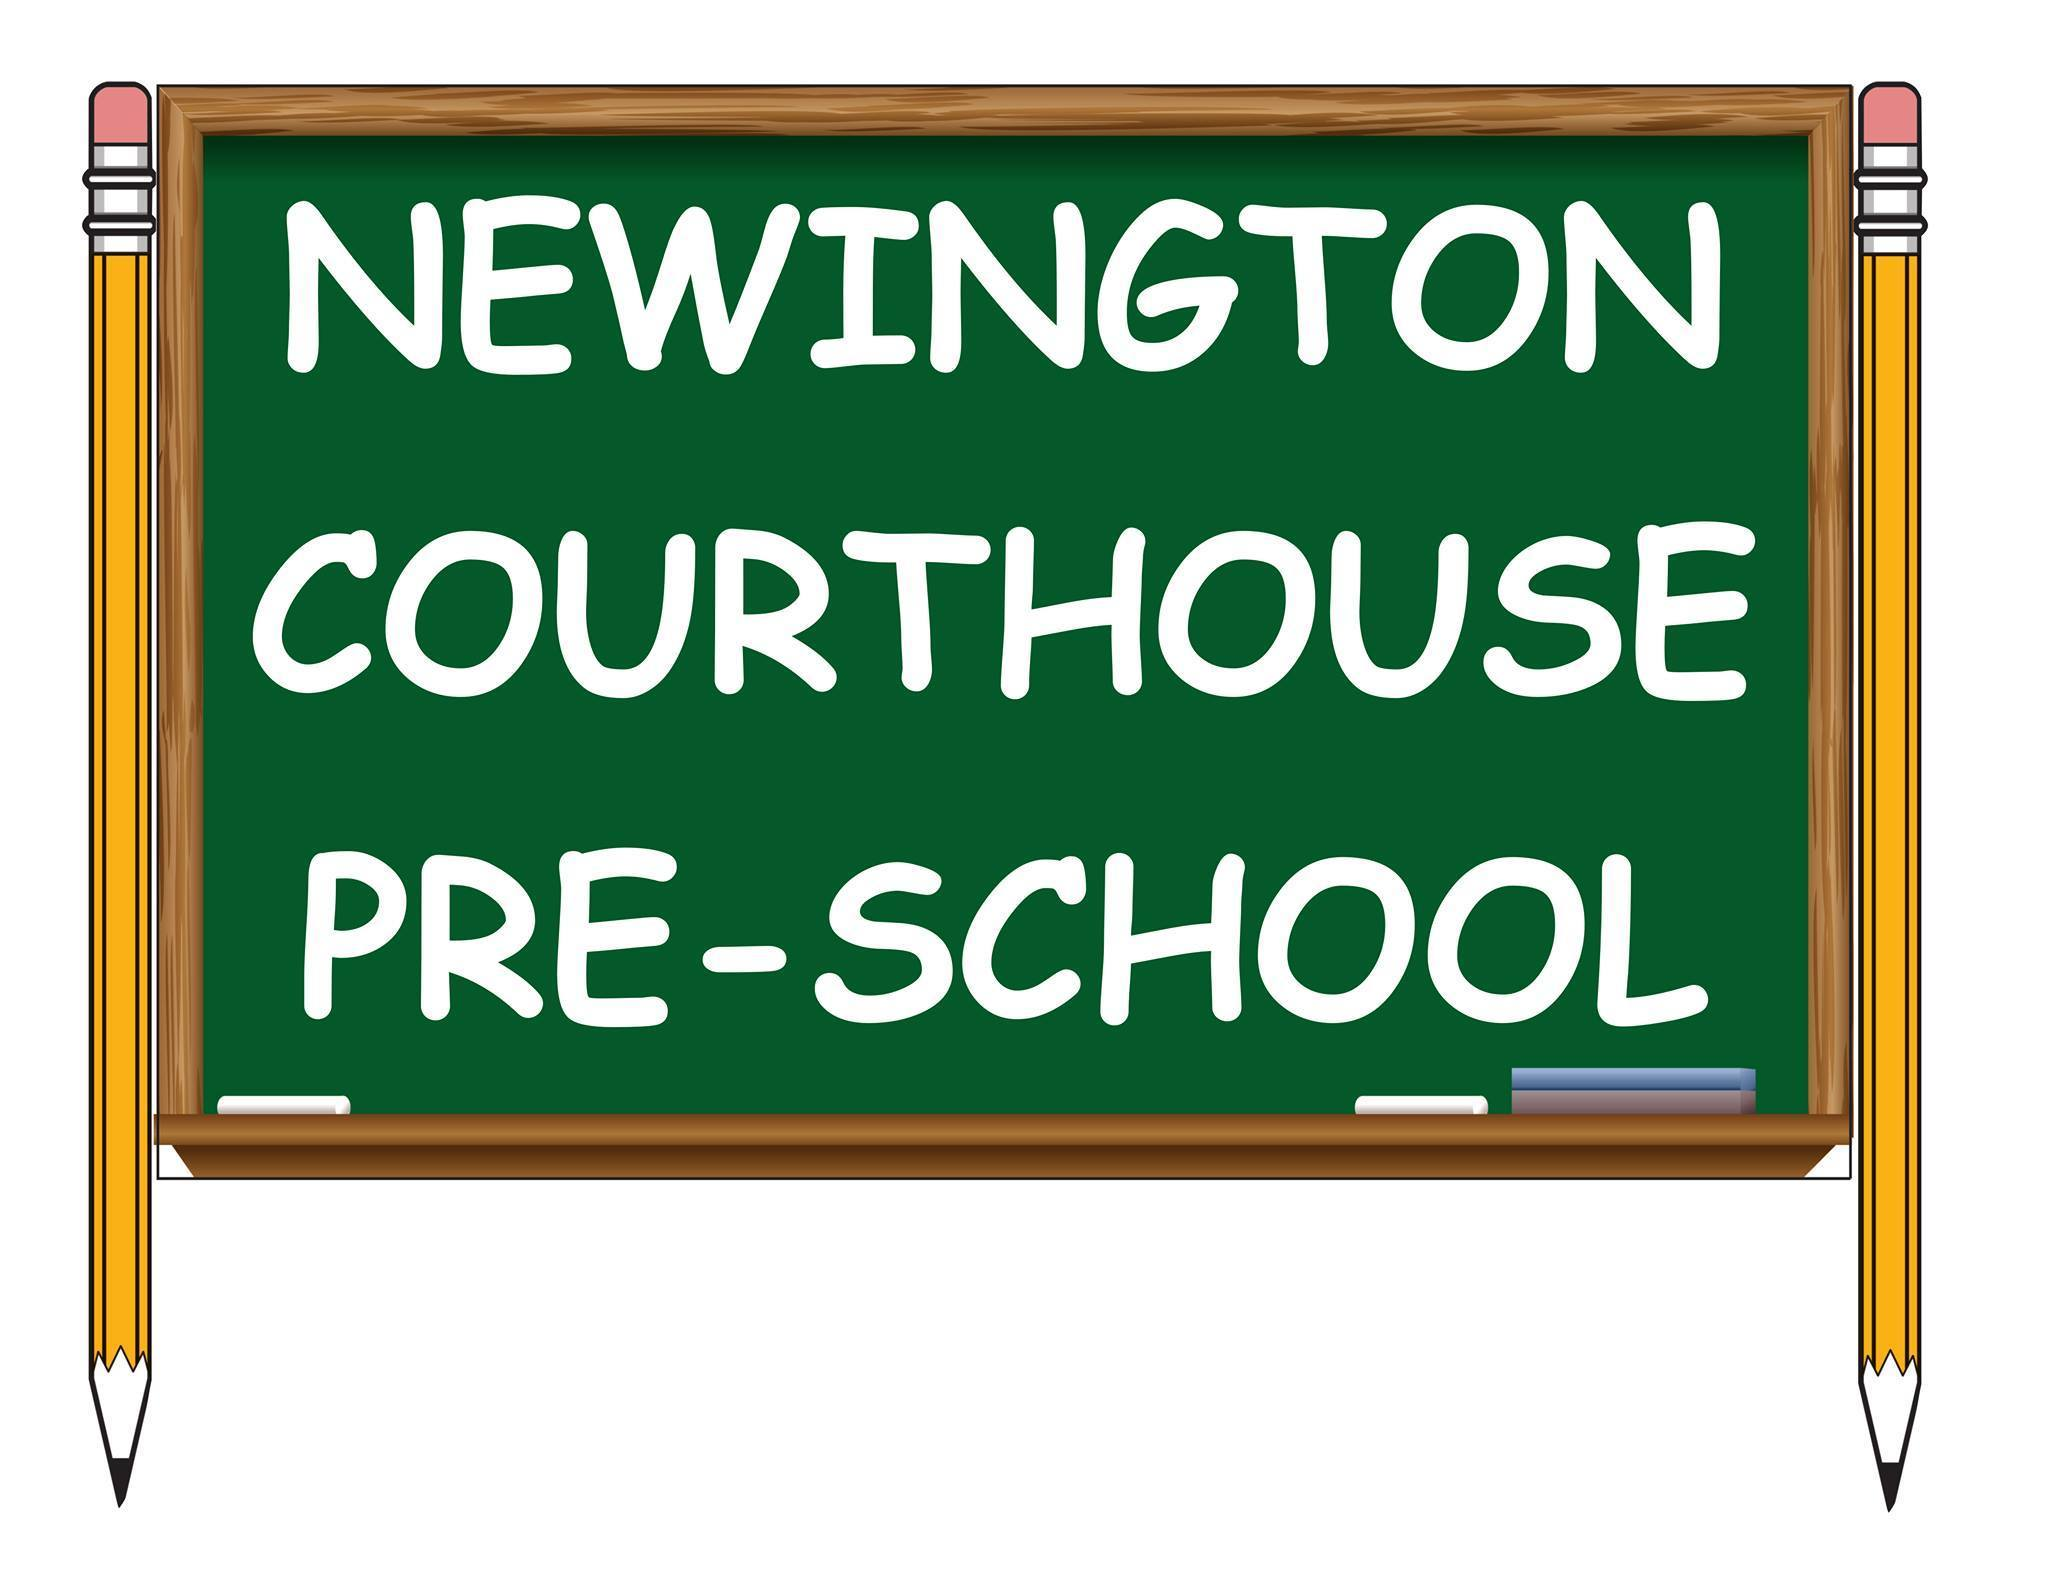 Newington Courthouse Preschool